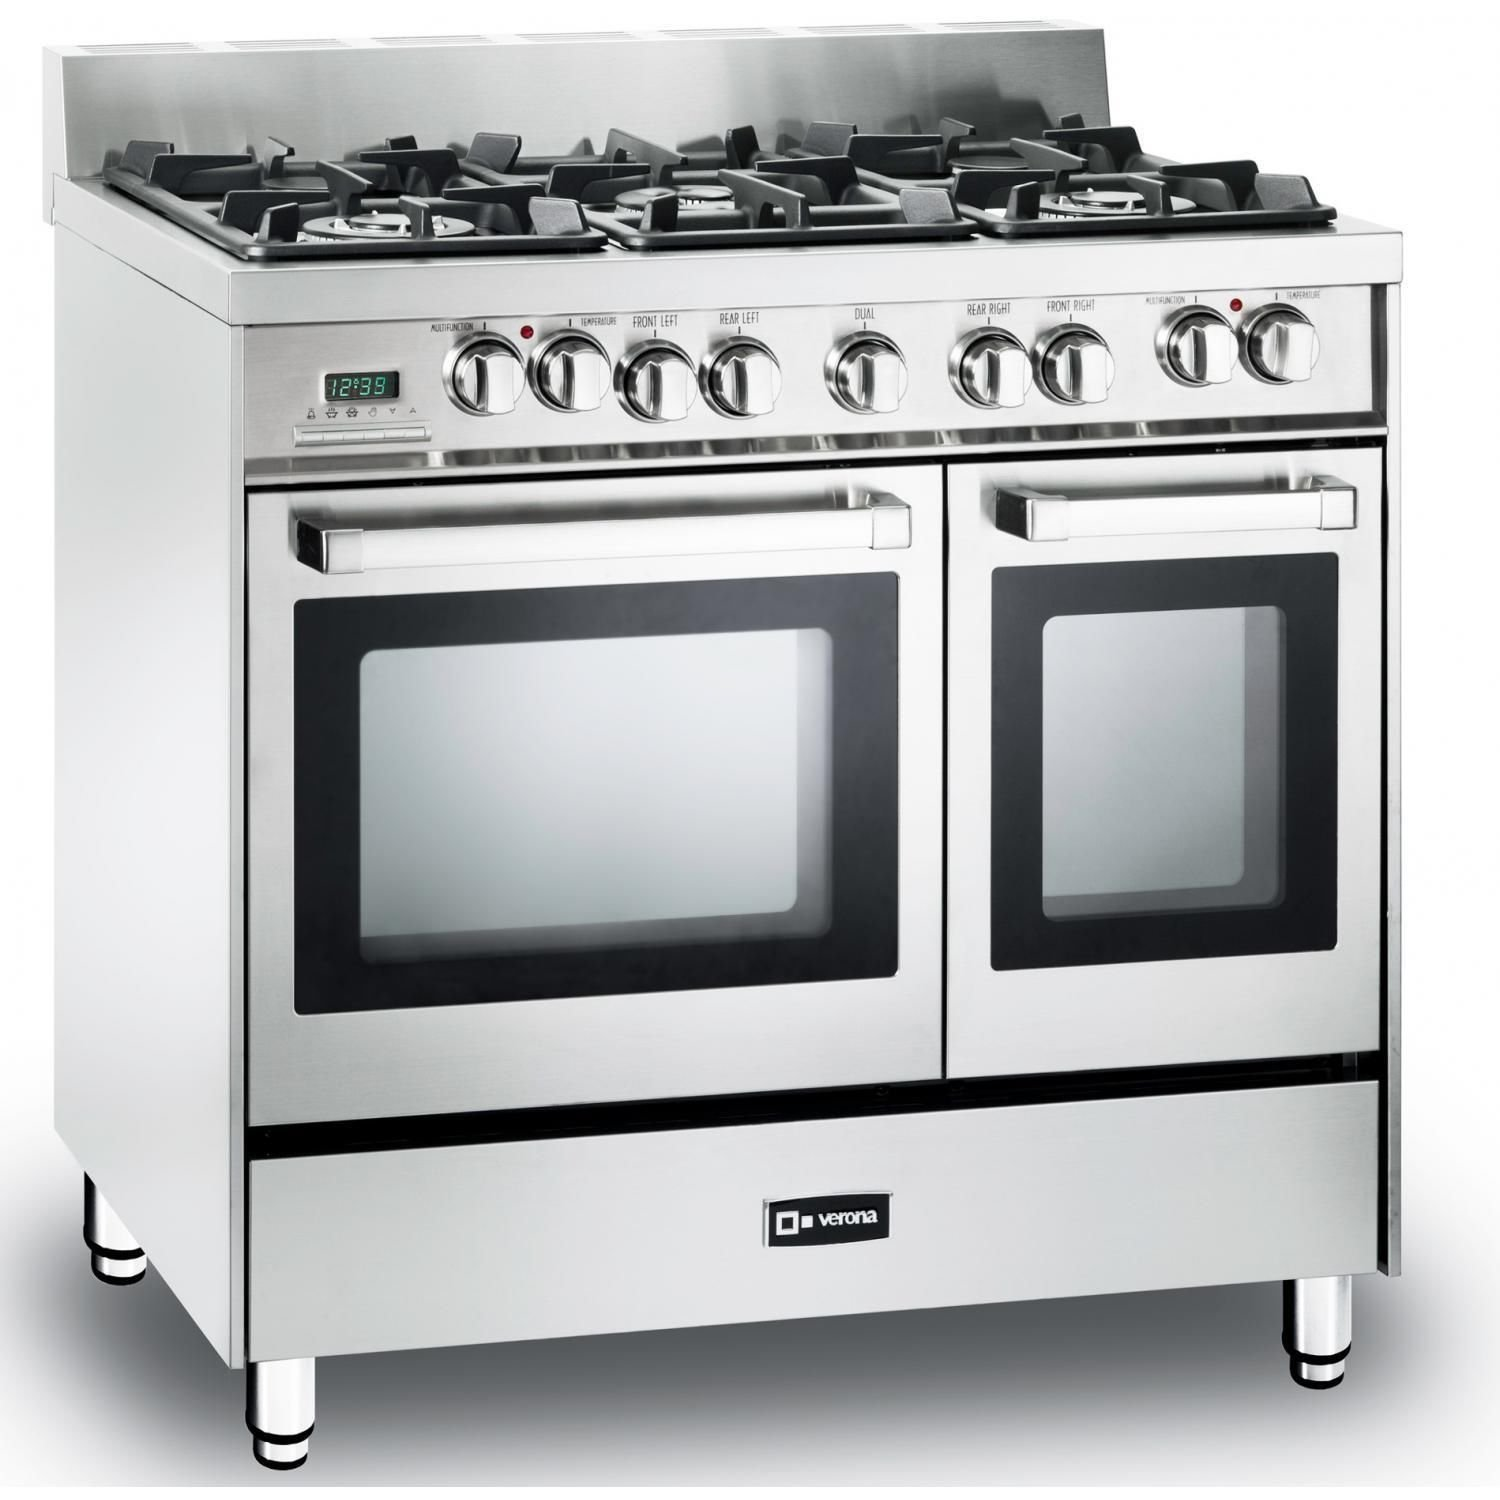 amazon com verona vefsge365ndss 36 pro style dual fuel range with